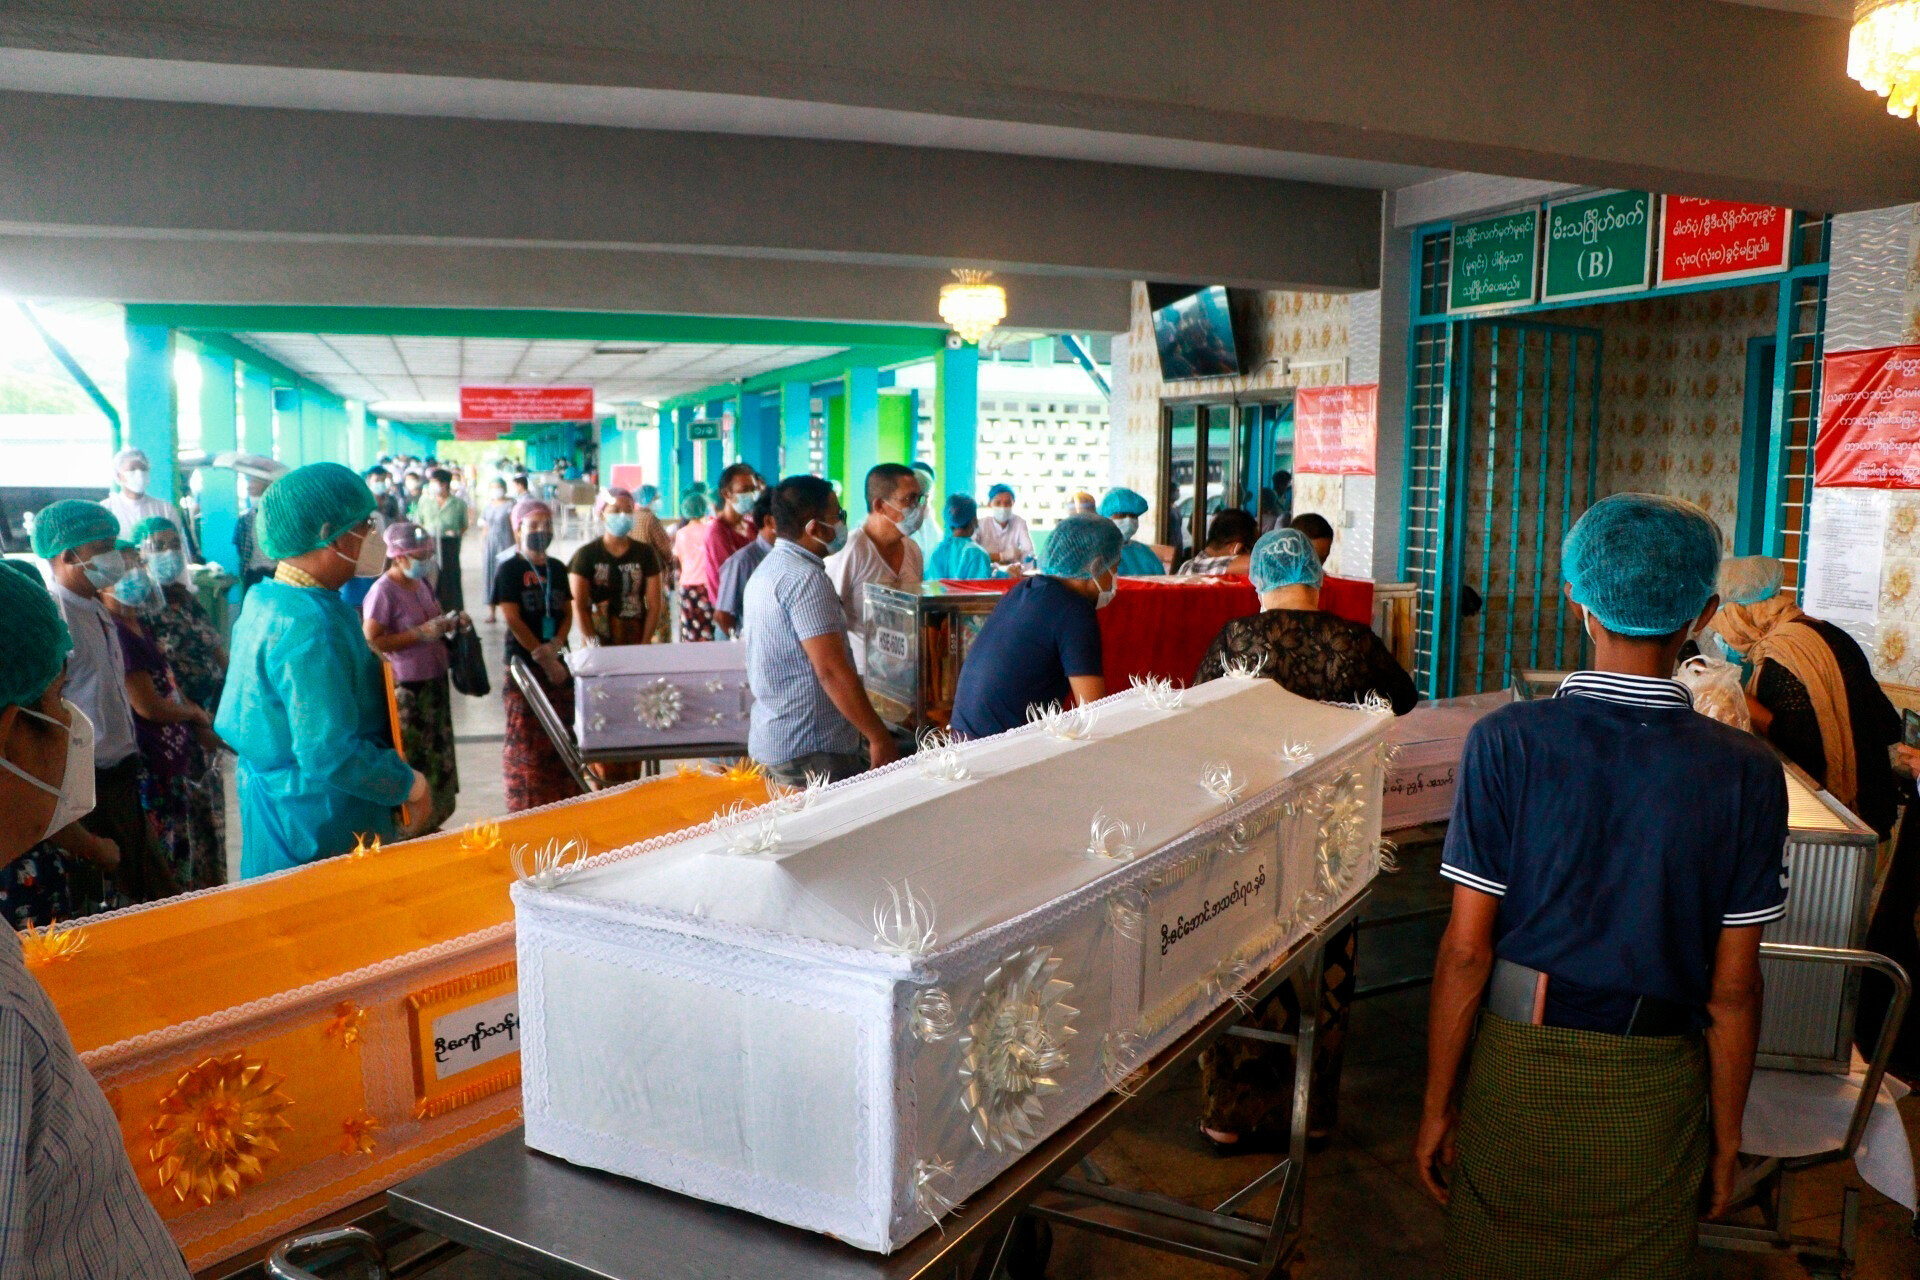 <i>AP</i><br/>People wearing face masks wait while caskets with bodies are queued outside a crematorium at the Yay Way cemetery in Yangon